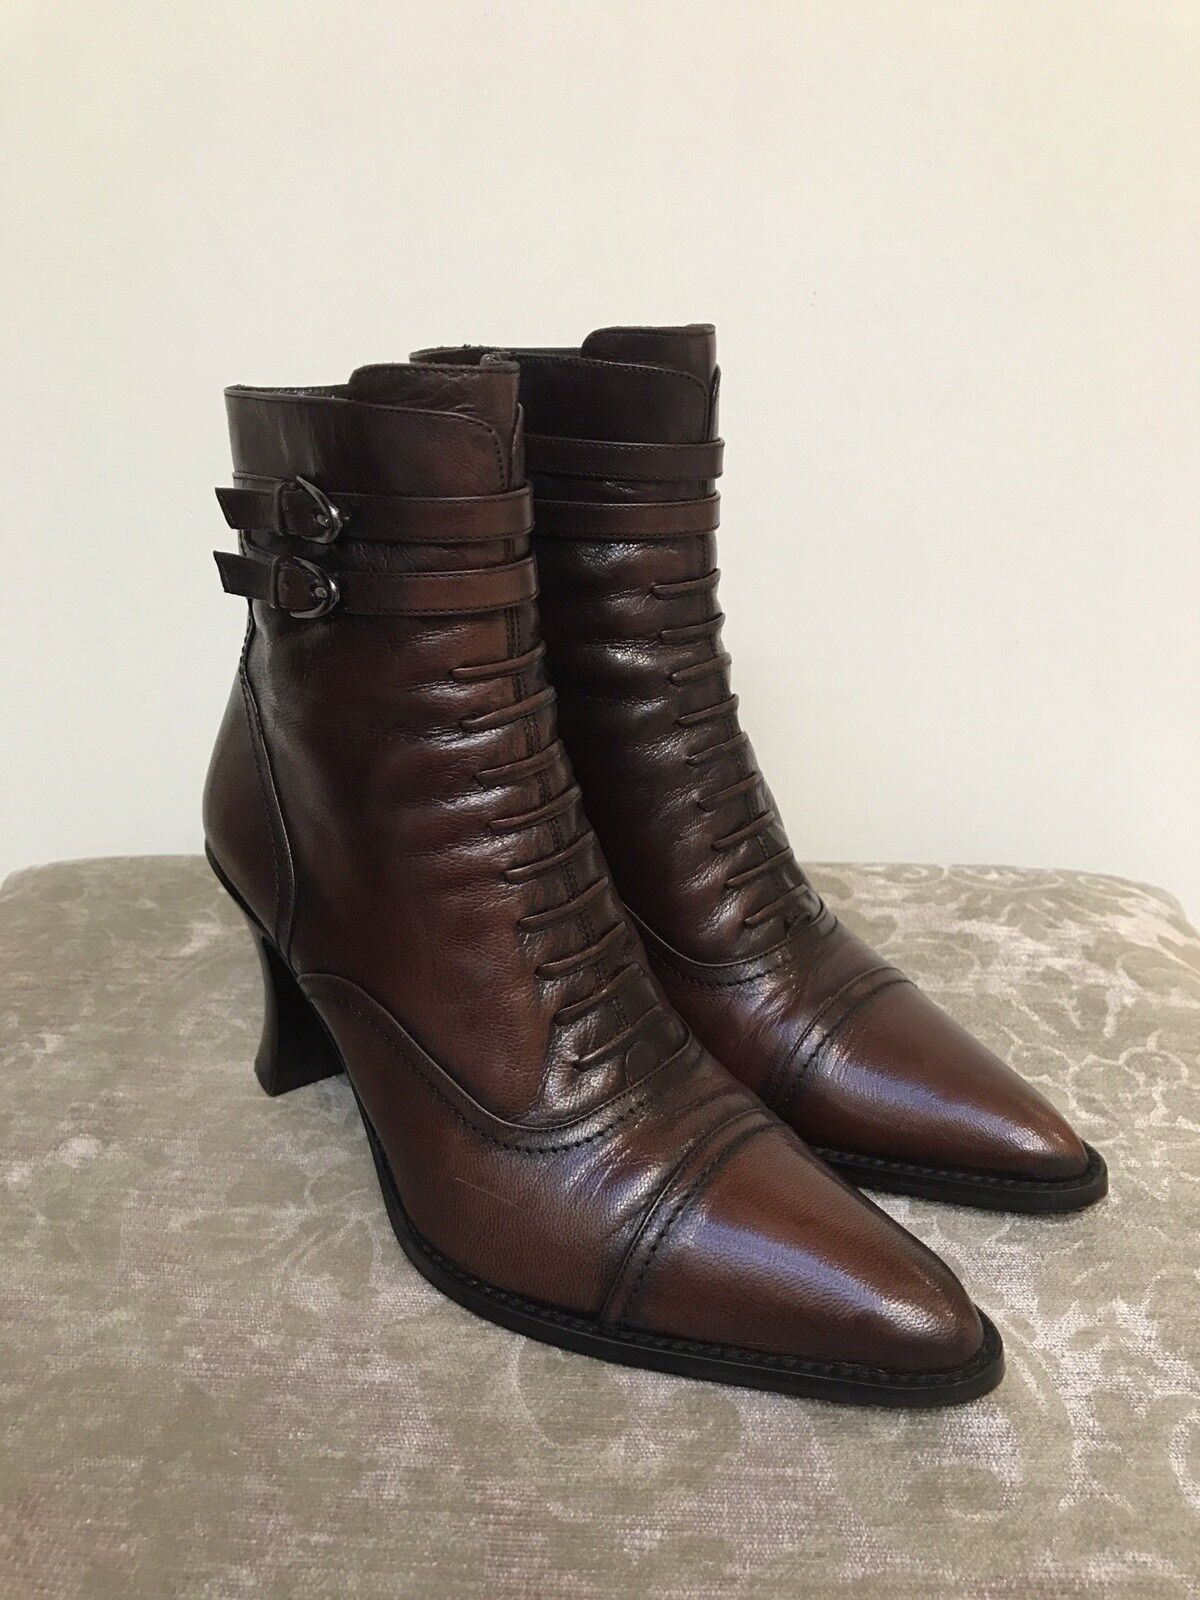 Via Spiga  Olbia  Leather Boots Size 6 1 2 M Made In